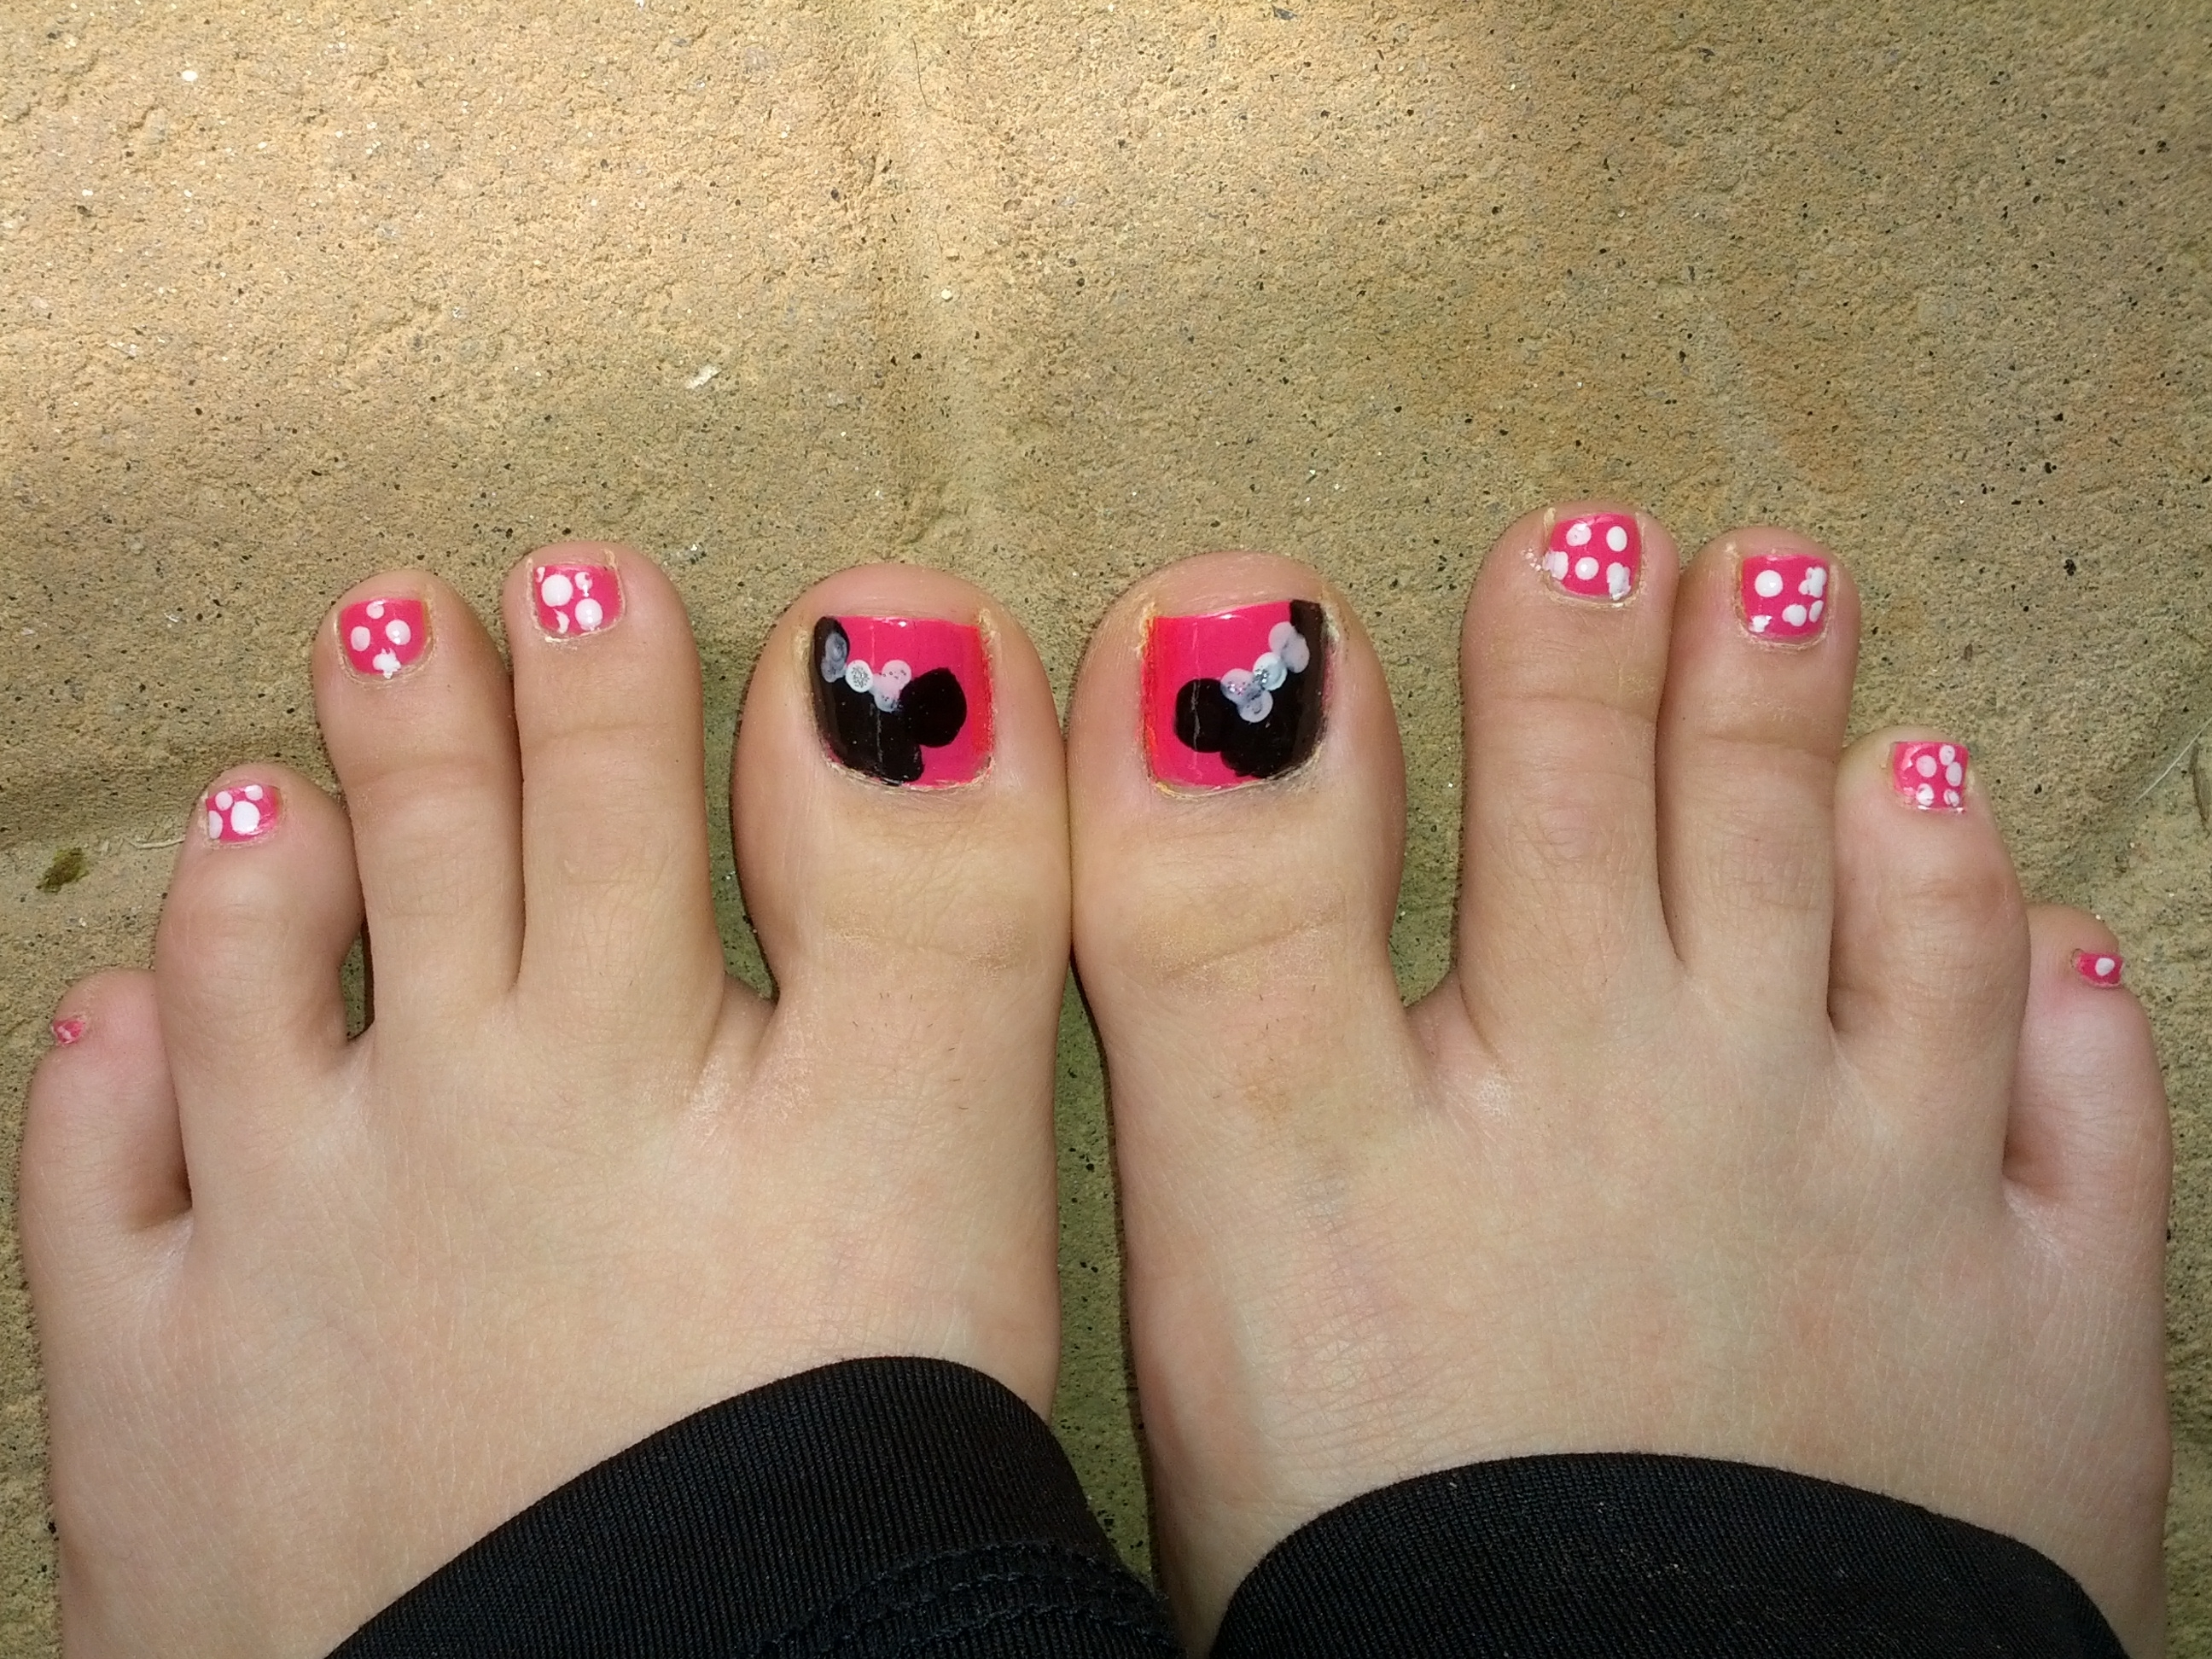 Nail Art, Toes, Disney, Mini Mouse, Pink, Princess | Nail Art Intended For Current Mickey Mouse Toe Rings (View 14 of 15)